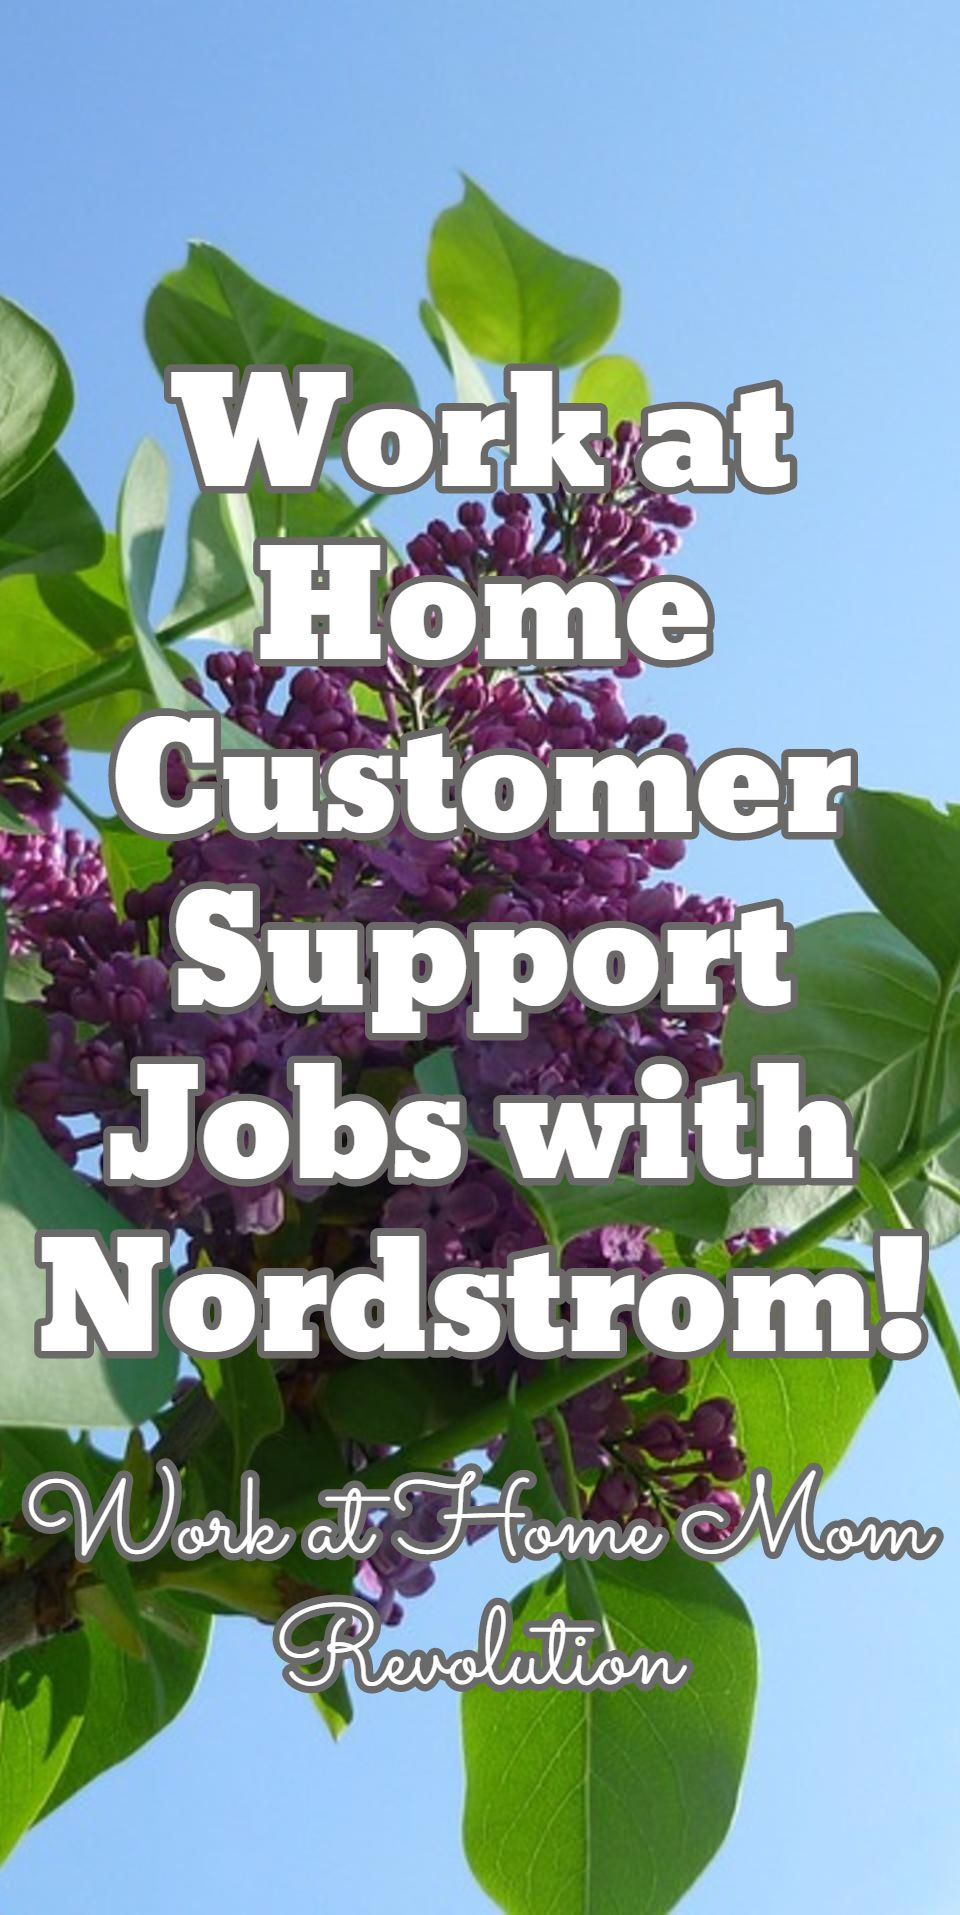 Work at Home Customer Support Jobs with Nordstrom! / Work at Home Mom Revolution